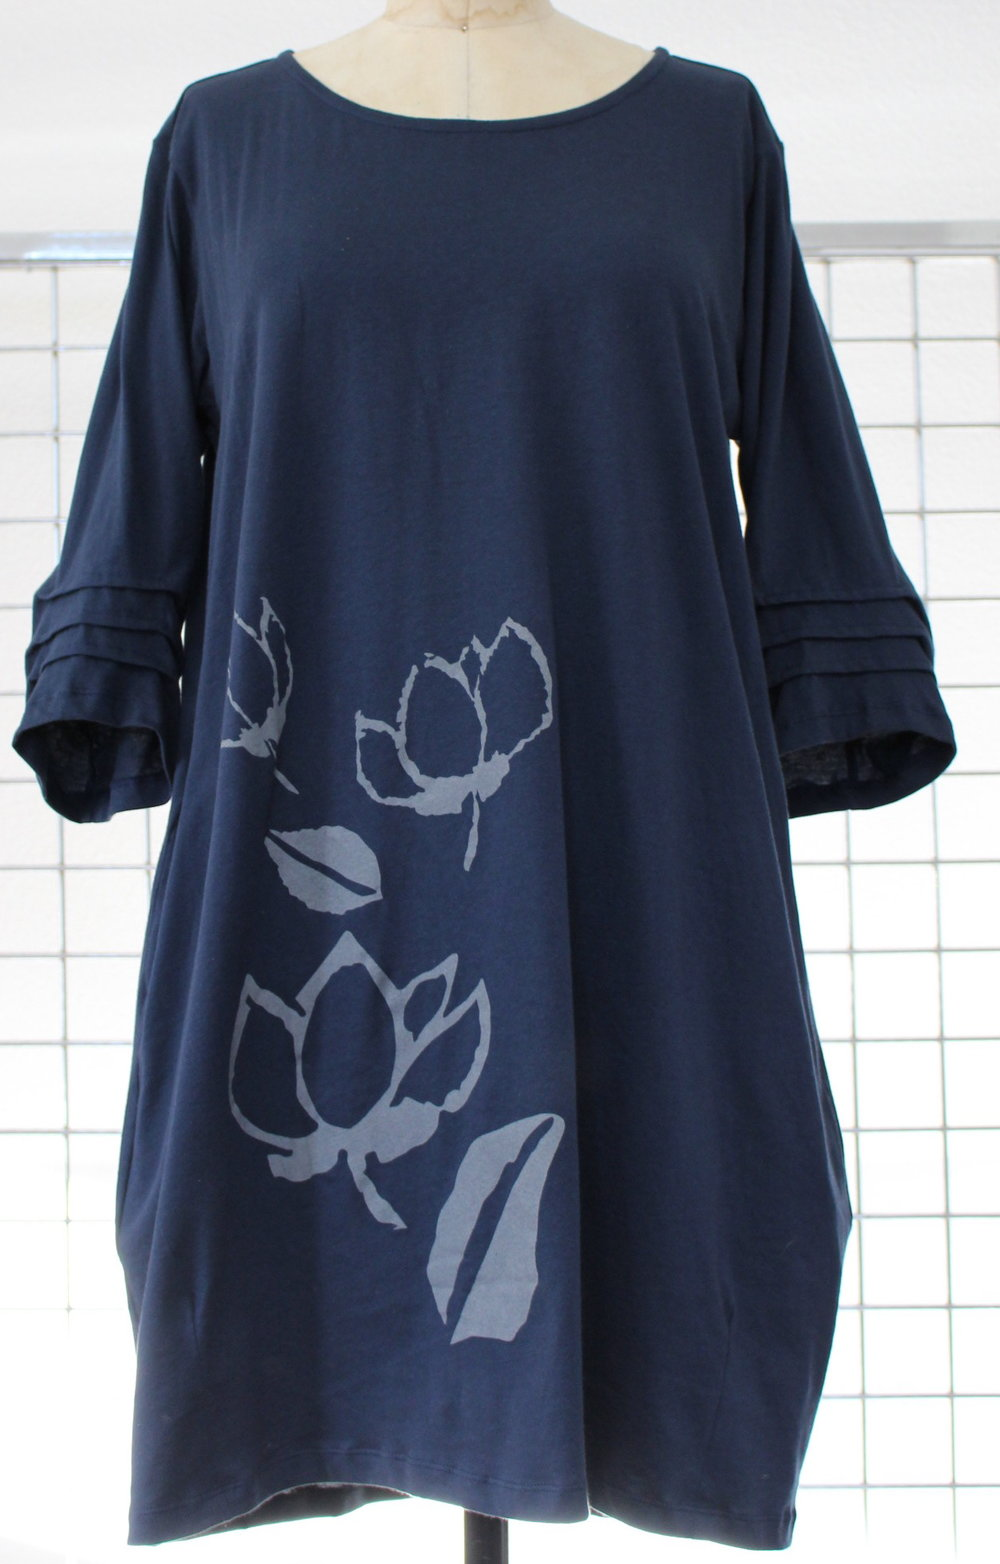 Magnolia Stamp on Cotton Knit    CSM - 194T Dress    S/MM/LXL       Navy,  Black